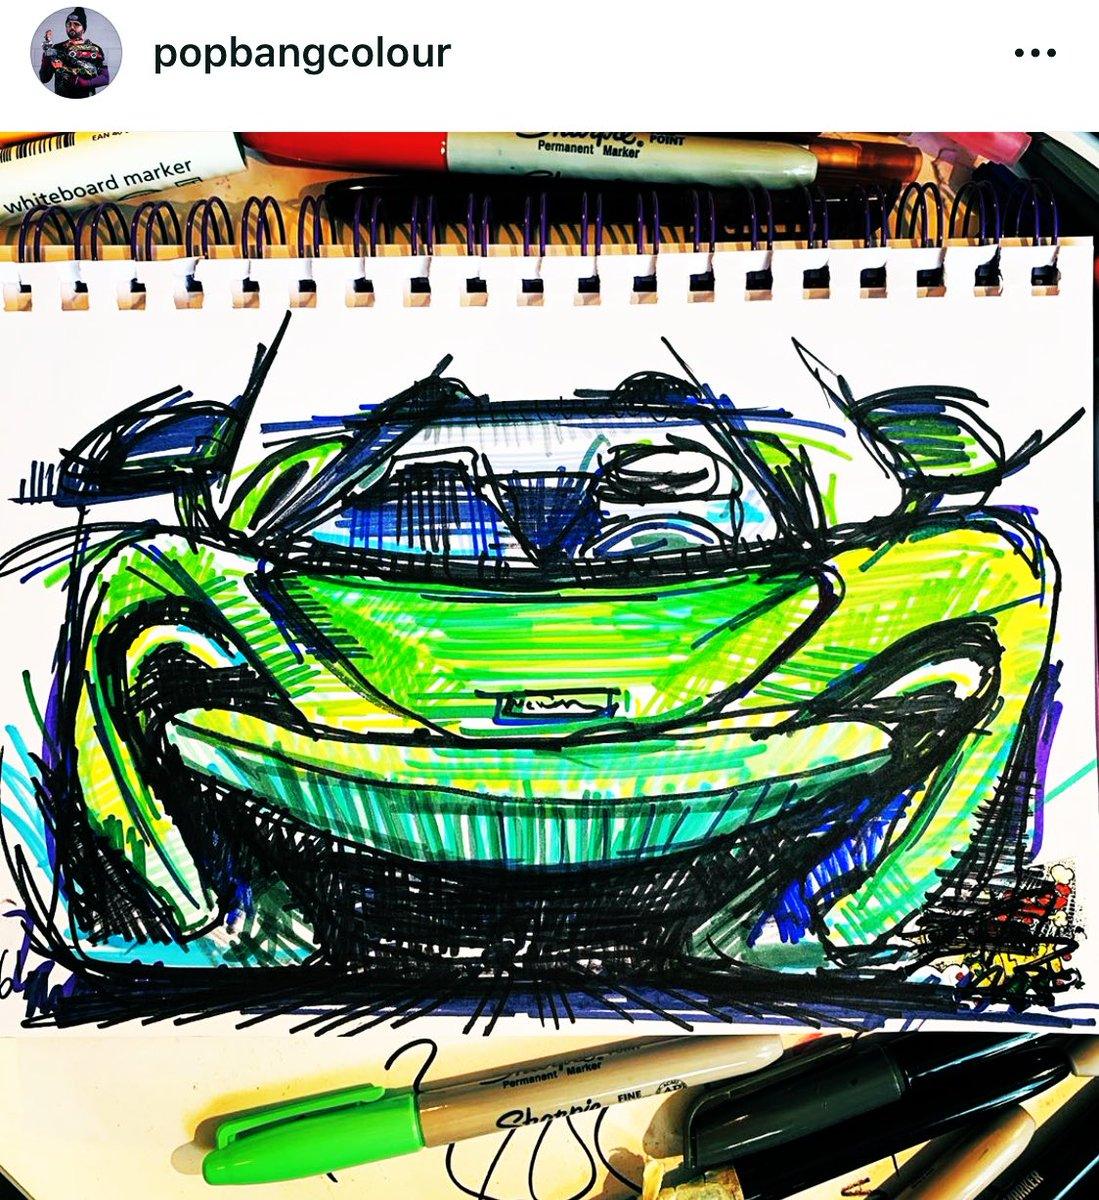 Absolutely love this drawing by @Popbangcolour of the @McLarenAuto #600LT! 💚 After my amazing #F1PirelliHotlaps experience at @SilverstoneUK last year thanks to the brilliant @McLarenF1 guys, you can see why this car means a lot to me 🥺 Thankyou, Ian! 👏🏻  #ContinousCars 🖍 https://t.co/uHbjl3tq5P https://t.co/uiz0HuP5tl